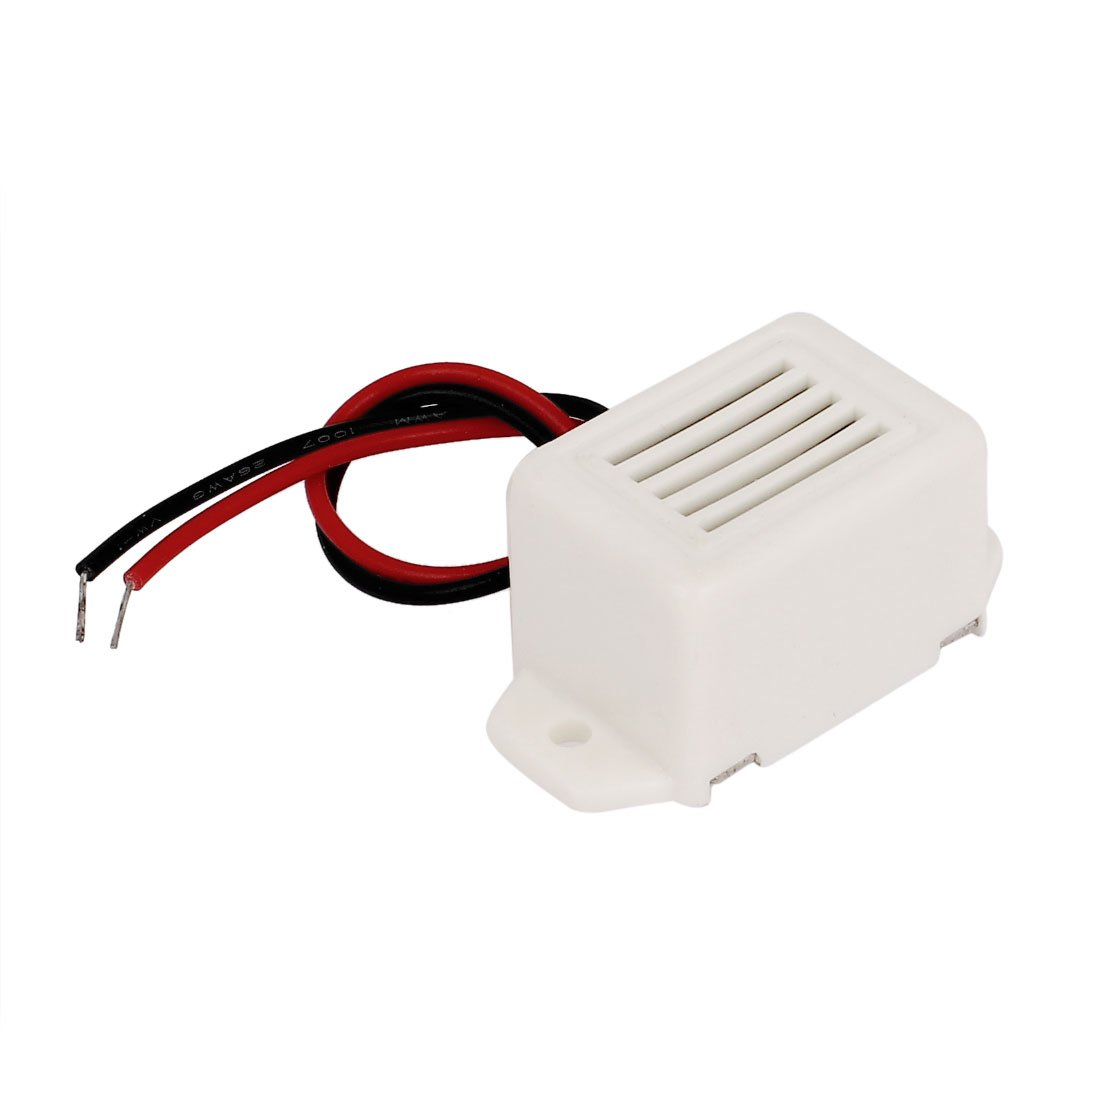 uxcell DC 3V Miniature Electronic Effect Tone Sounder Alarm Buzzer Beep White